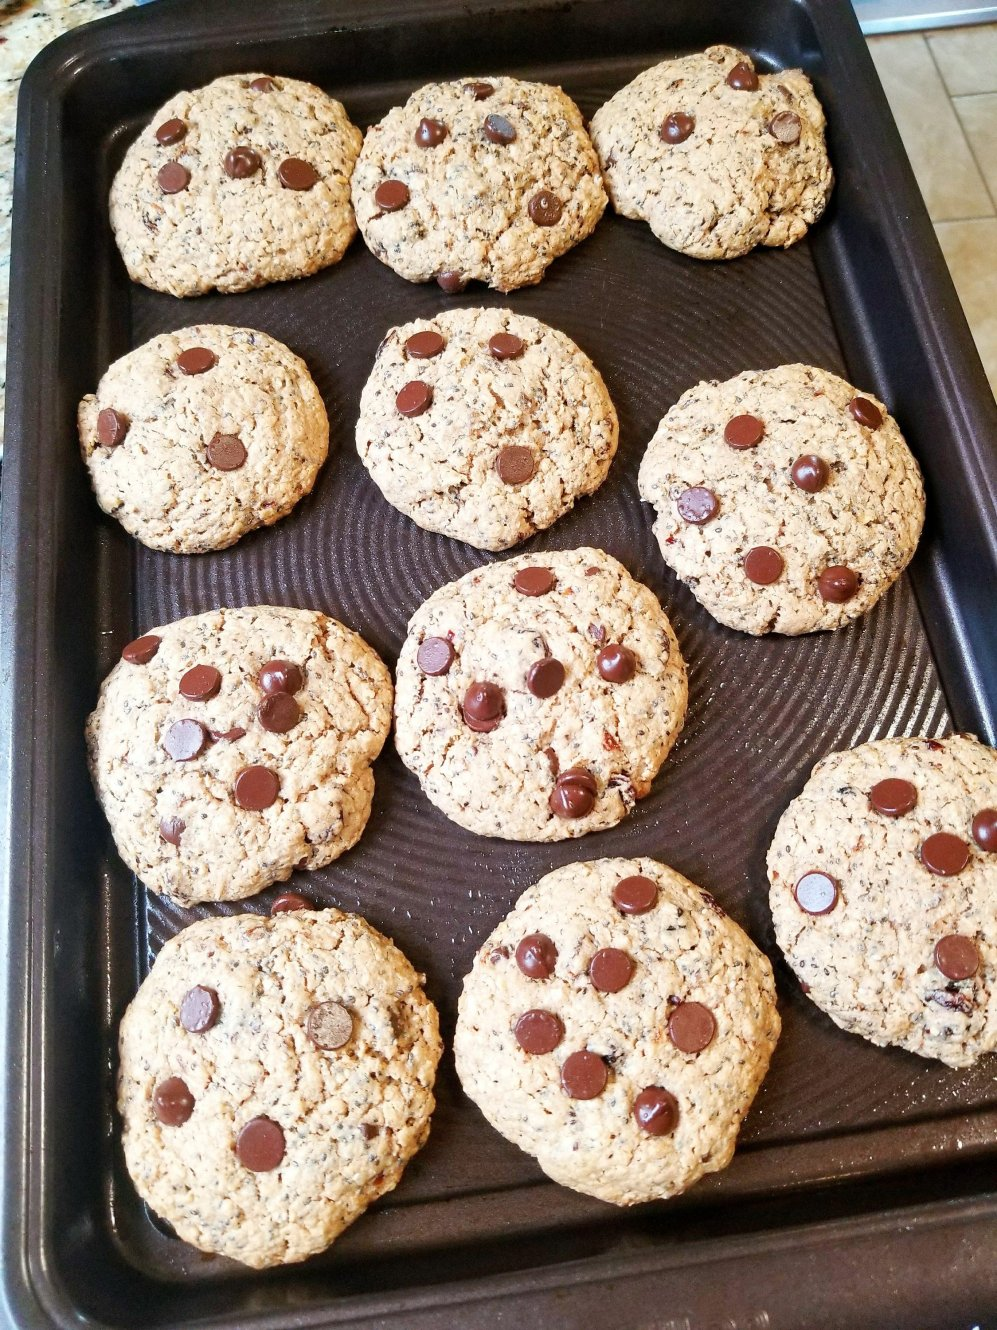 Gluten-Free Oatmeal, Raisin, Chocolate Chip, and Chia Cookies